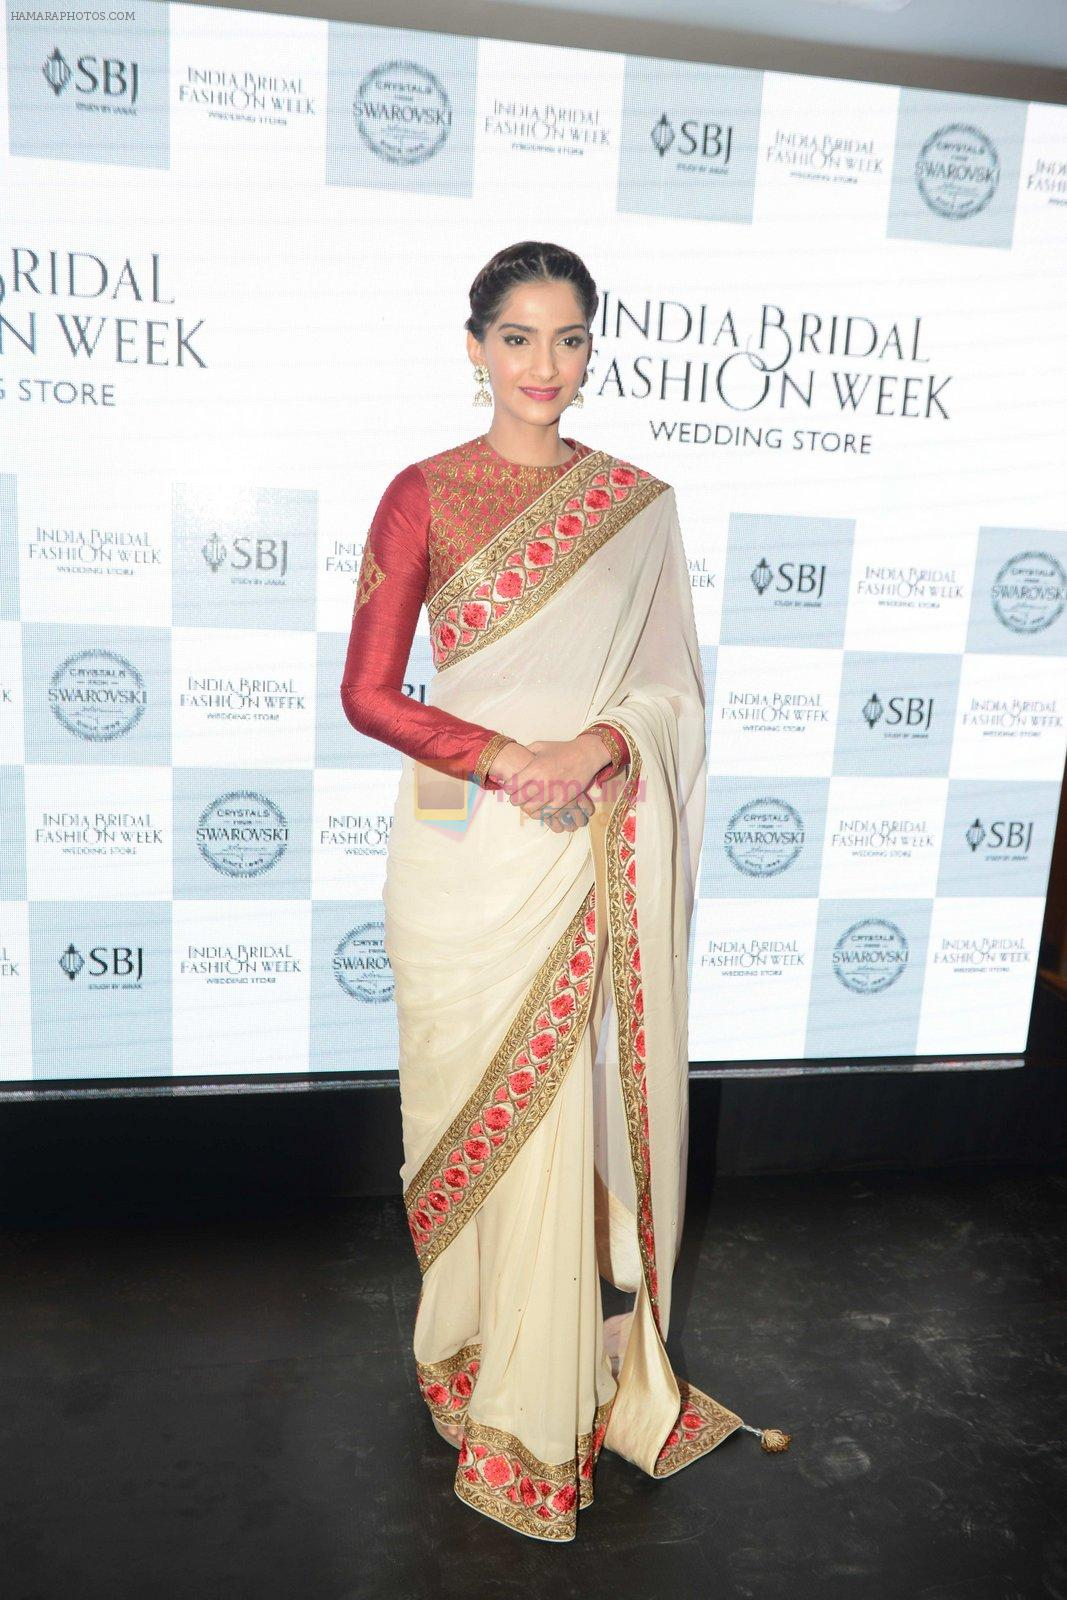 Sonam Kapoor during the launch of the first Indian Bridal Fashion Week Wedding Store, in New Delhi on 9th Sept 2016